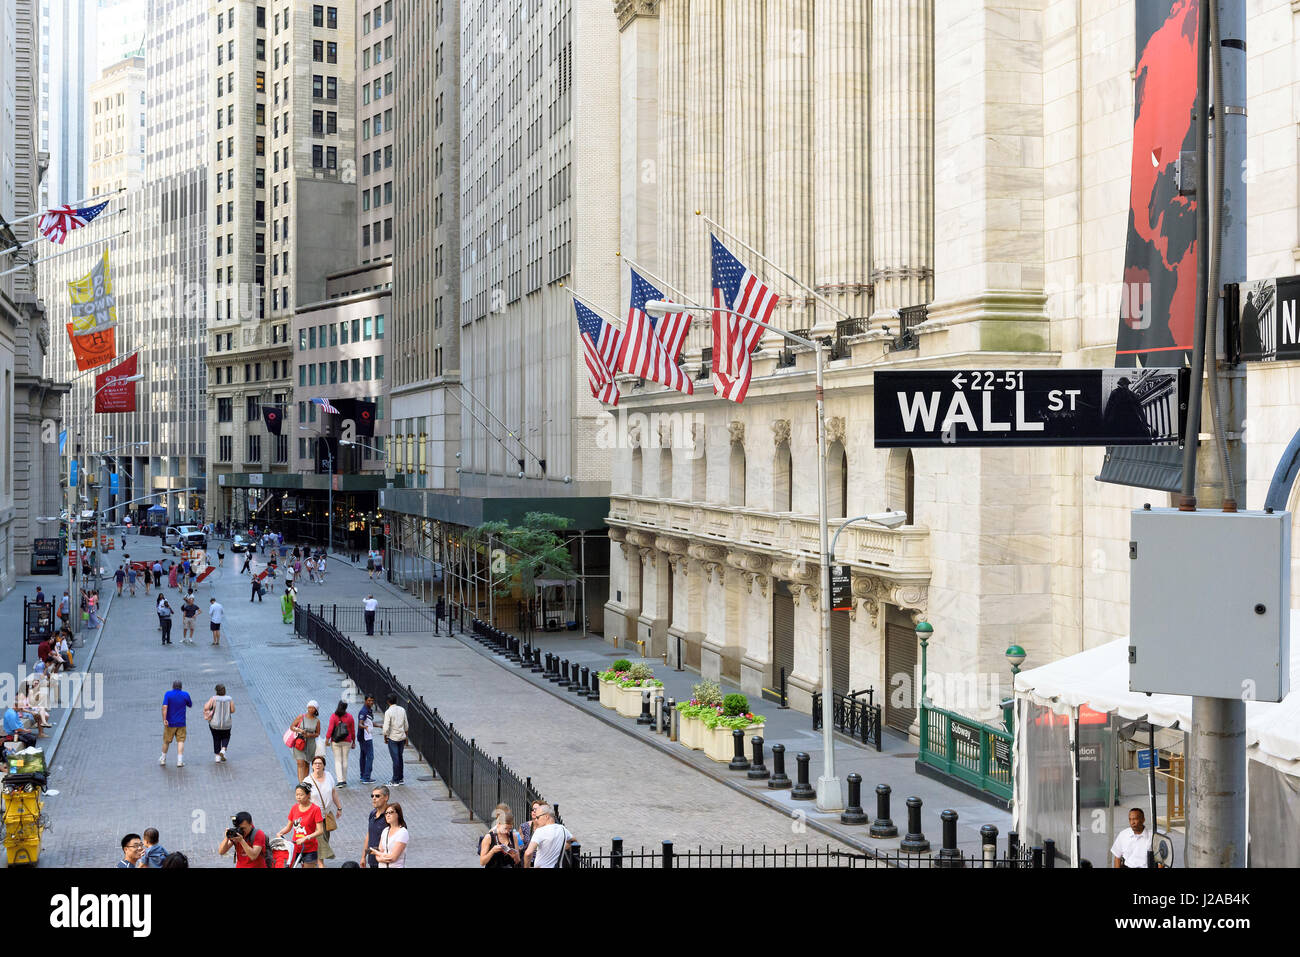 The New york Stock Exchange on the Wall street in New York. - Stock Image